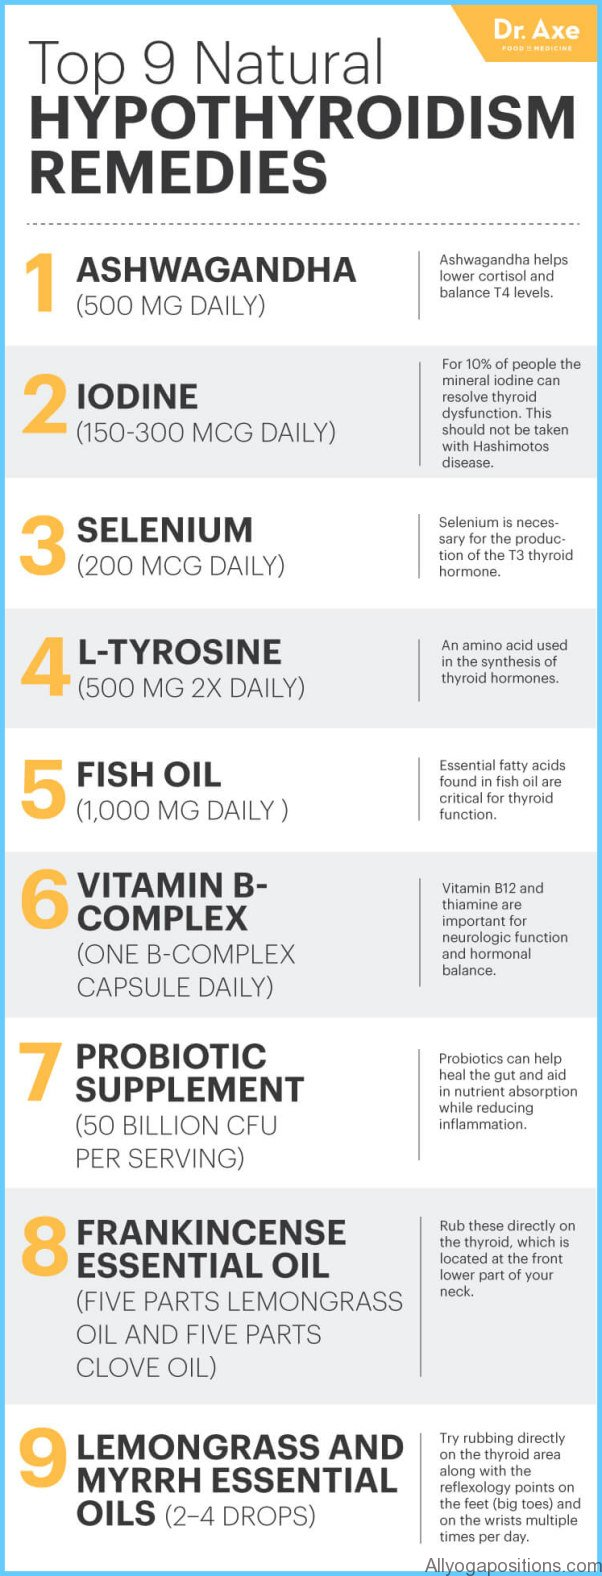 VITAMINS AND MINERALS Iodine for Thyroid Disease_0.jpg